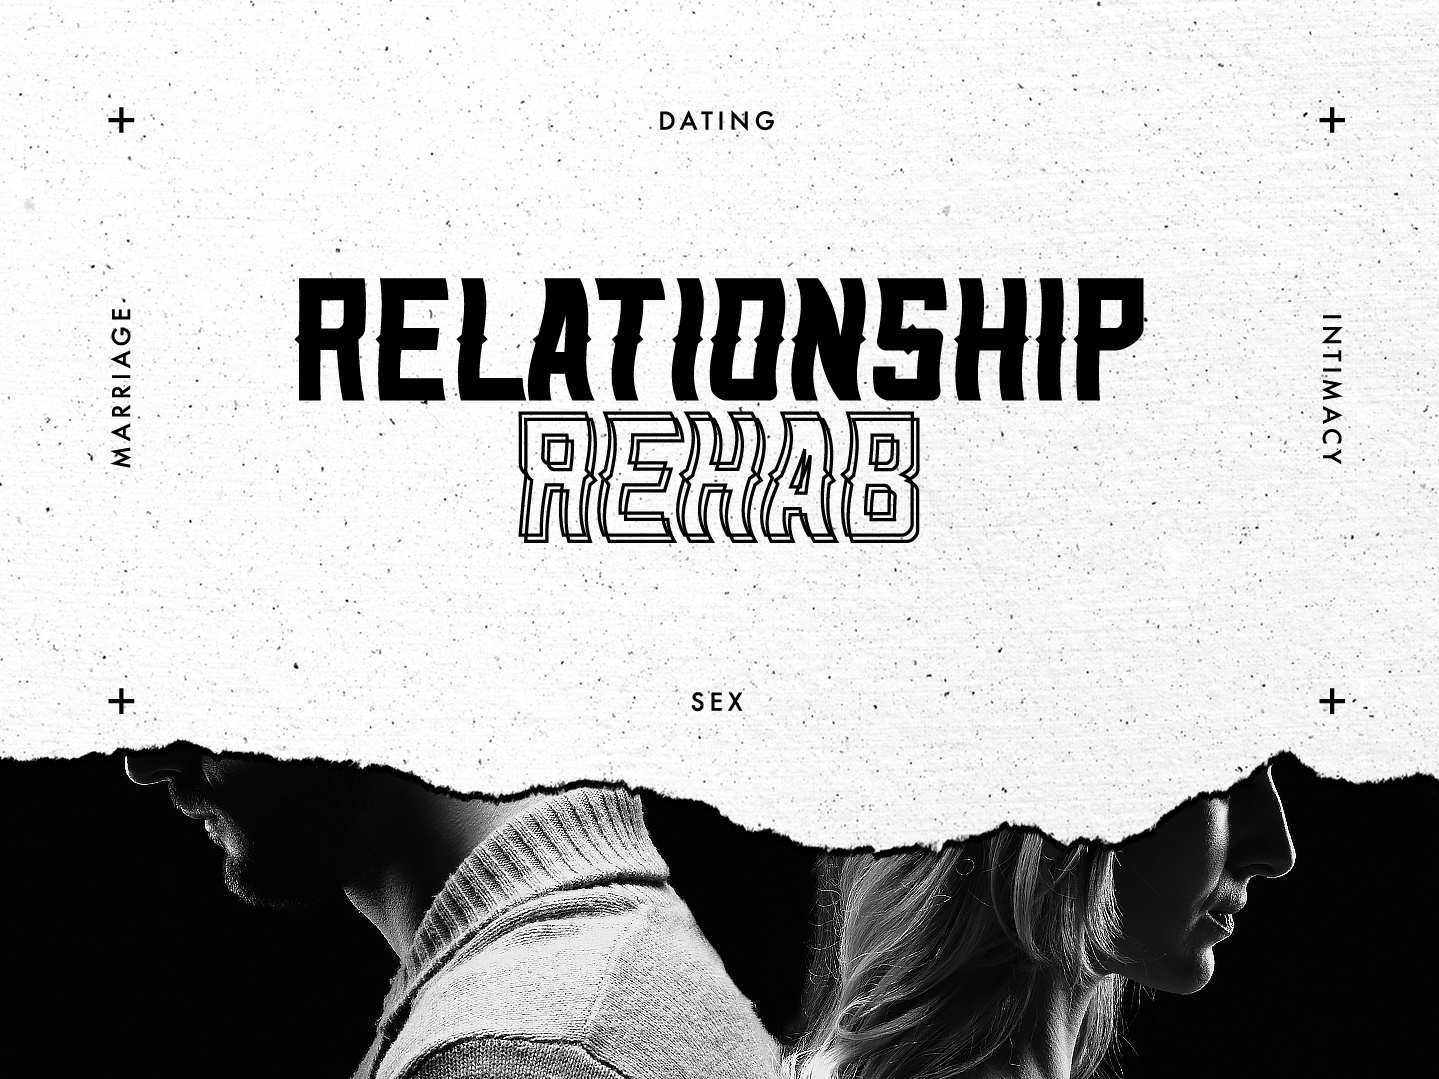 Relationship Rehab Series dating marriage relationships rehab relationship texture photoshop sermon series february layout design typography logo art direction church vector illustration